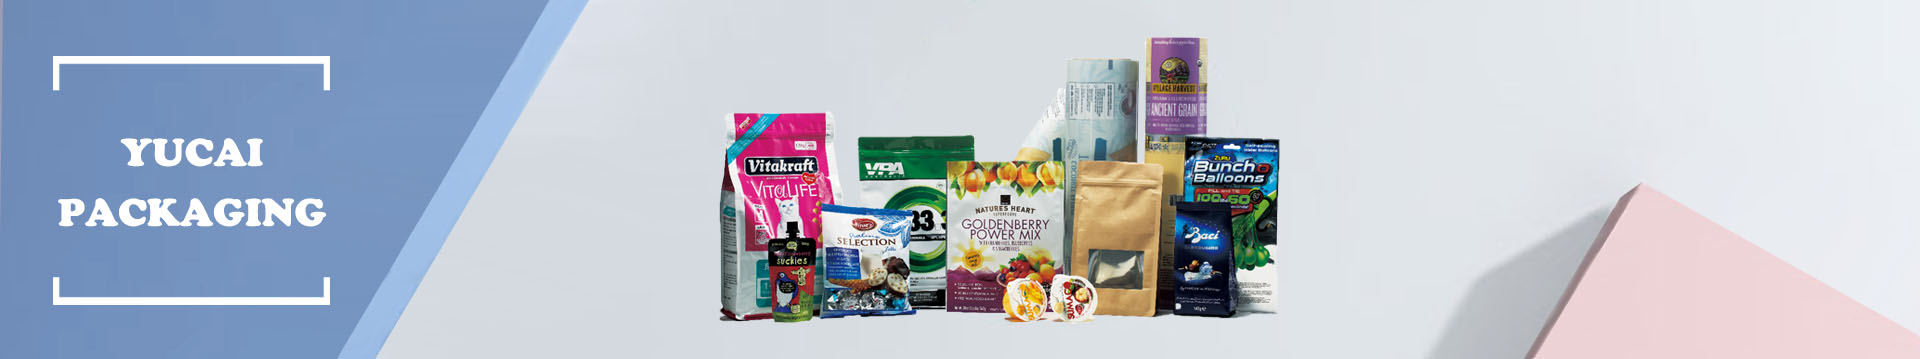 stand Up pouch,chocolate packaging supplies,packaging film roll-Yucai